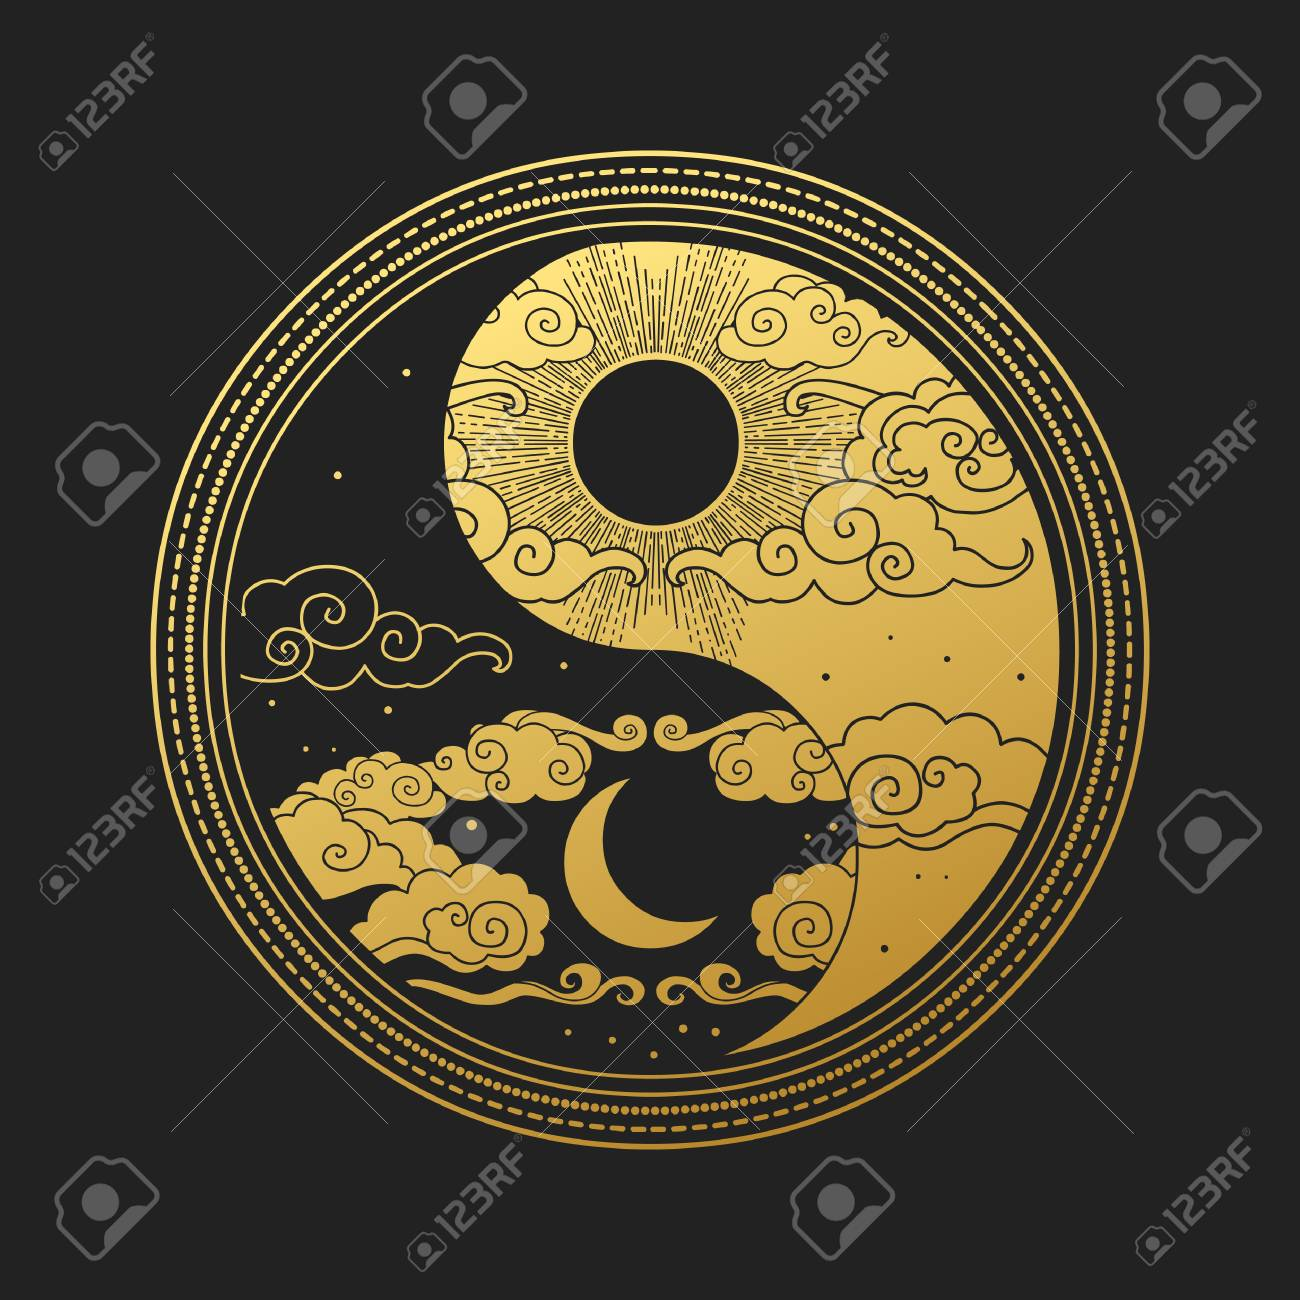 Decorative graphic design element in oriental style. Sun, Moon, clouds, stars. Vector hand drawing illustration - 119485226